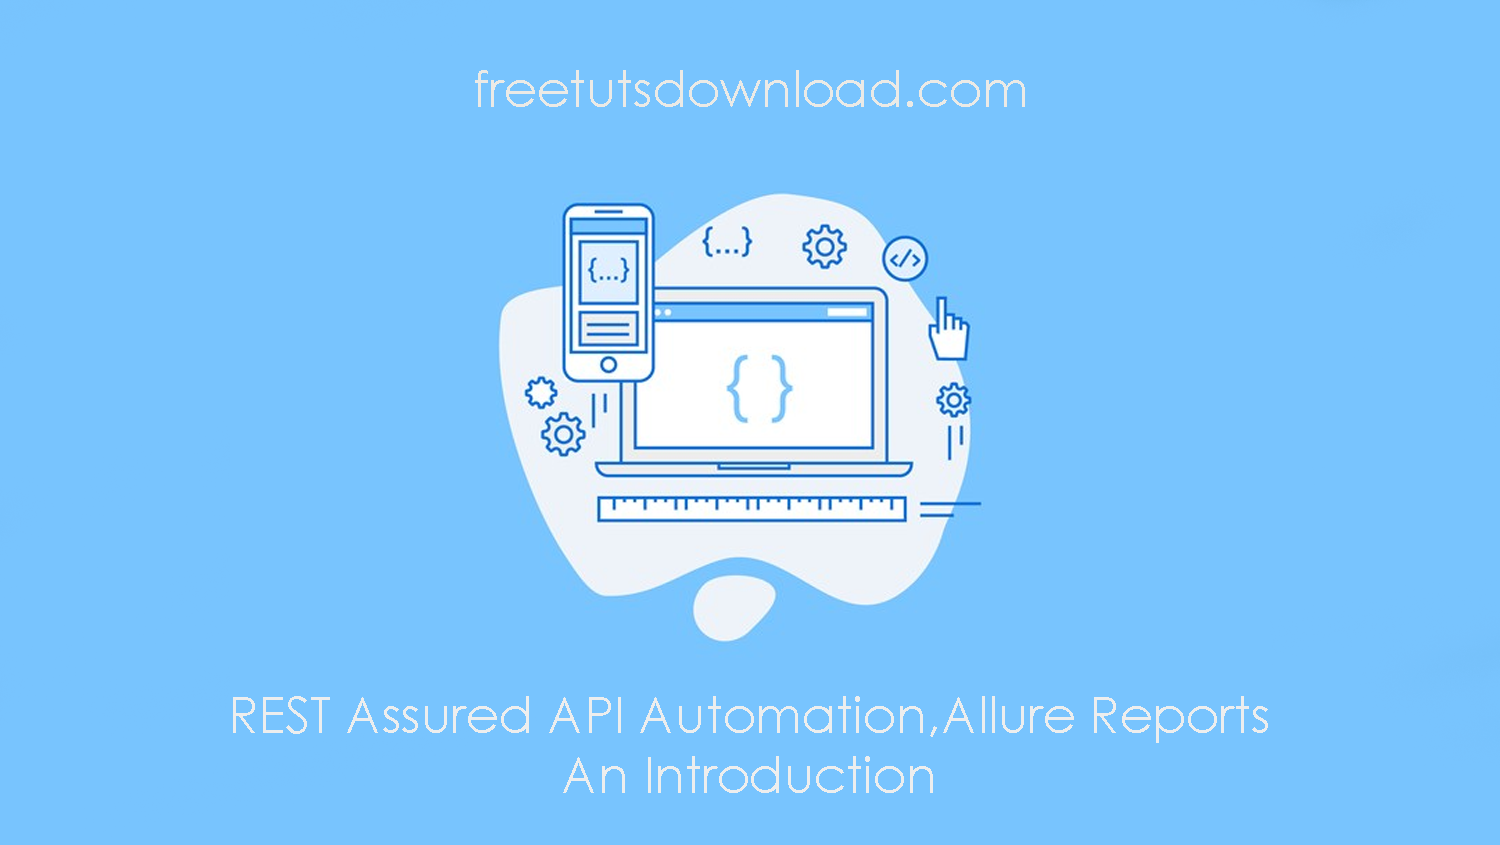 REST Assured API Automation,Allure Reports - An Introduction free download